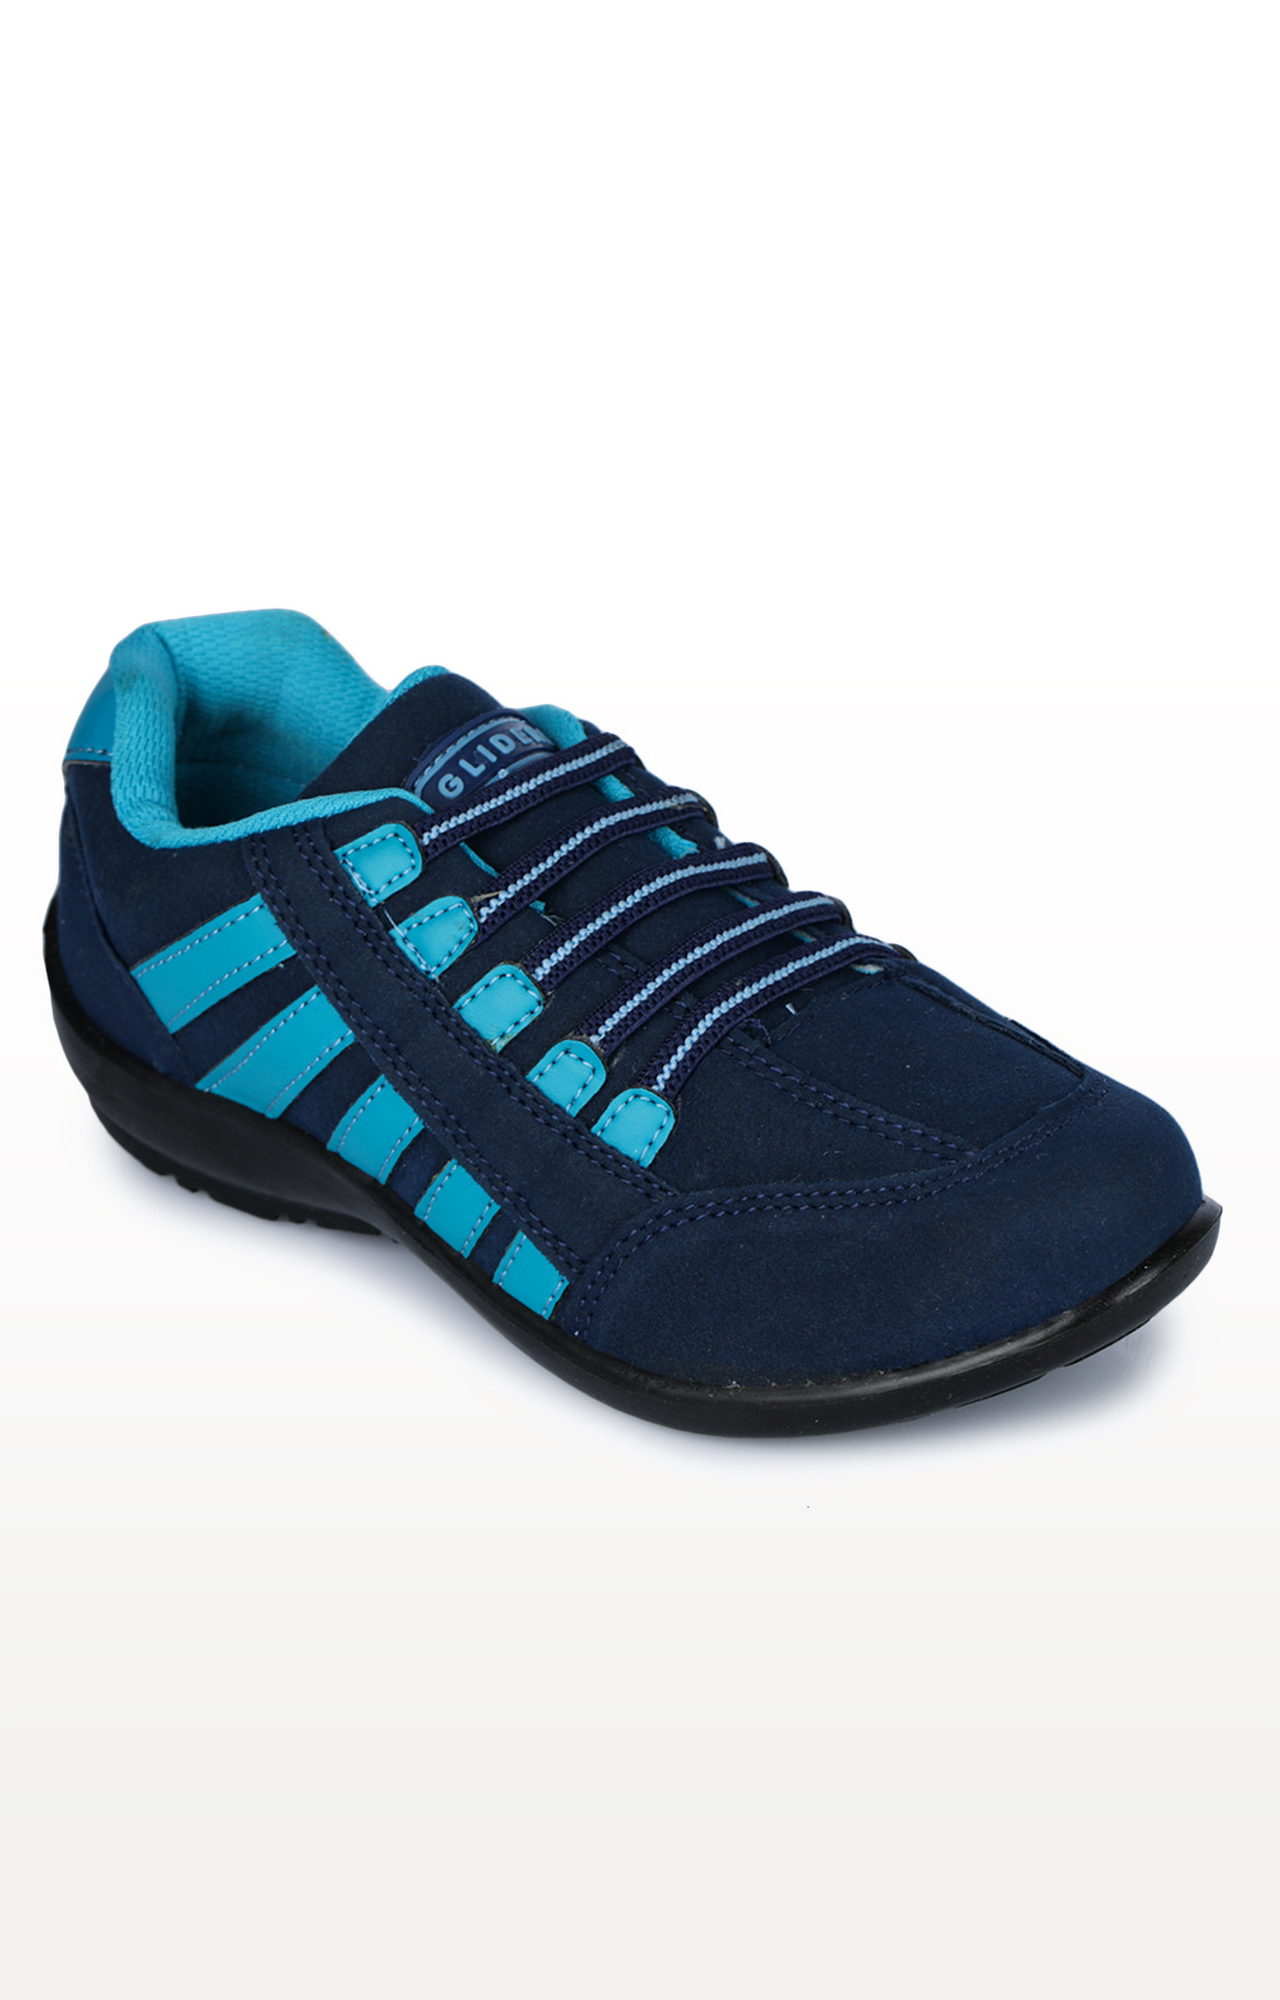 Liberty | Gliders by Liberty Blue Sports Shoes